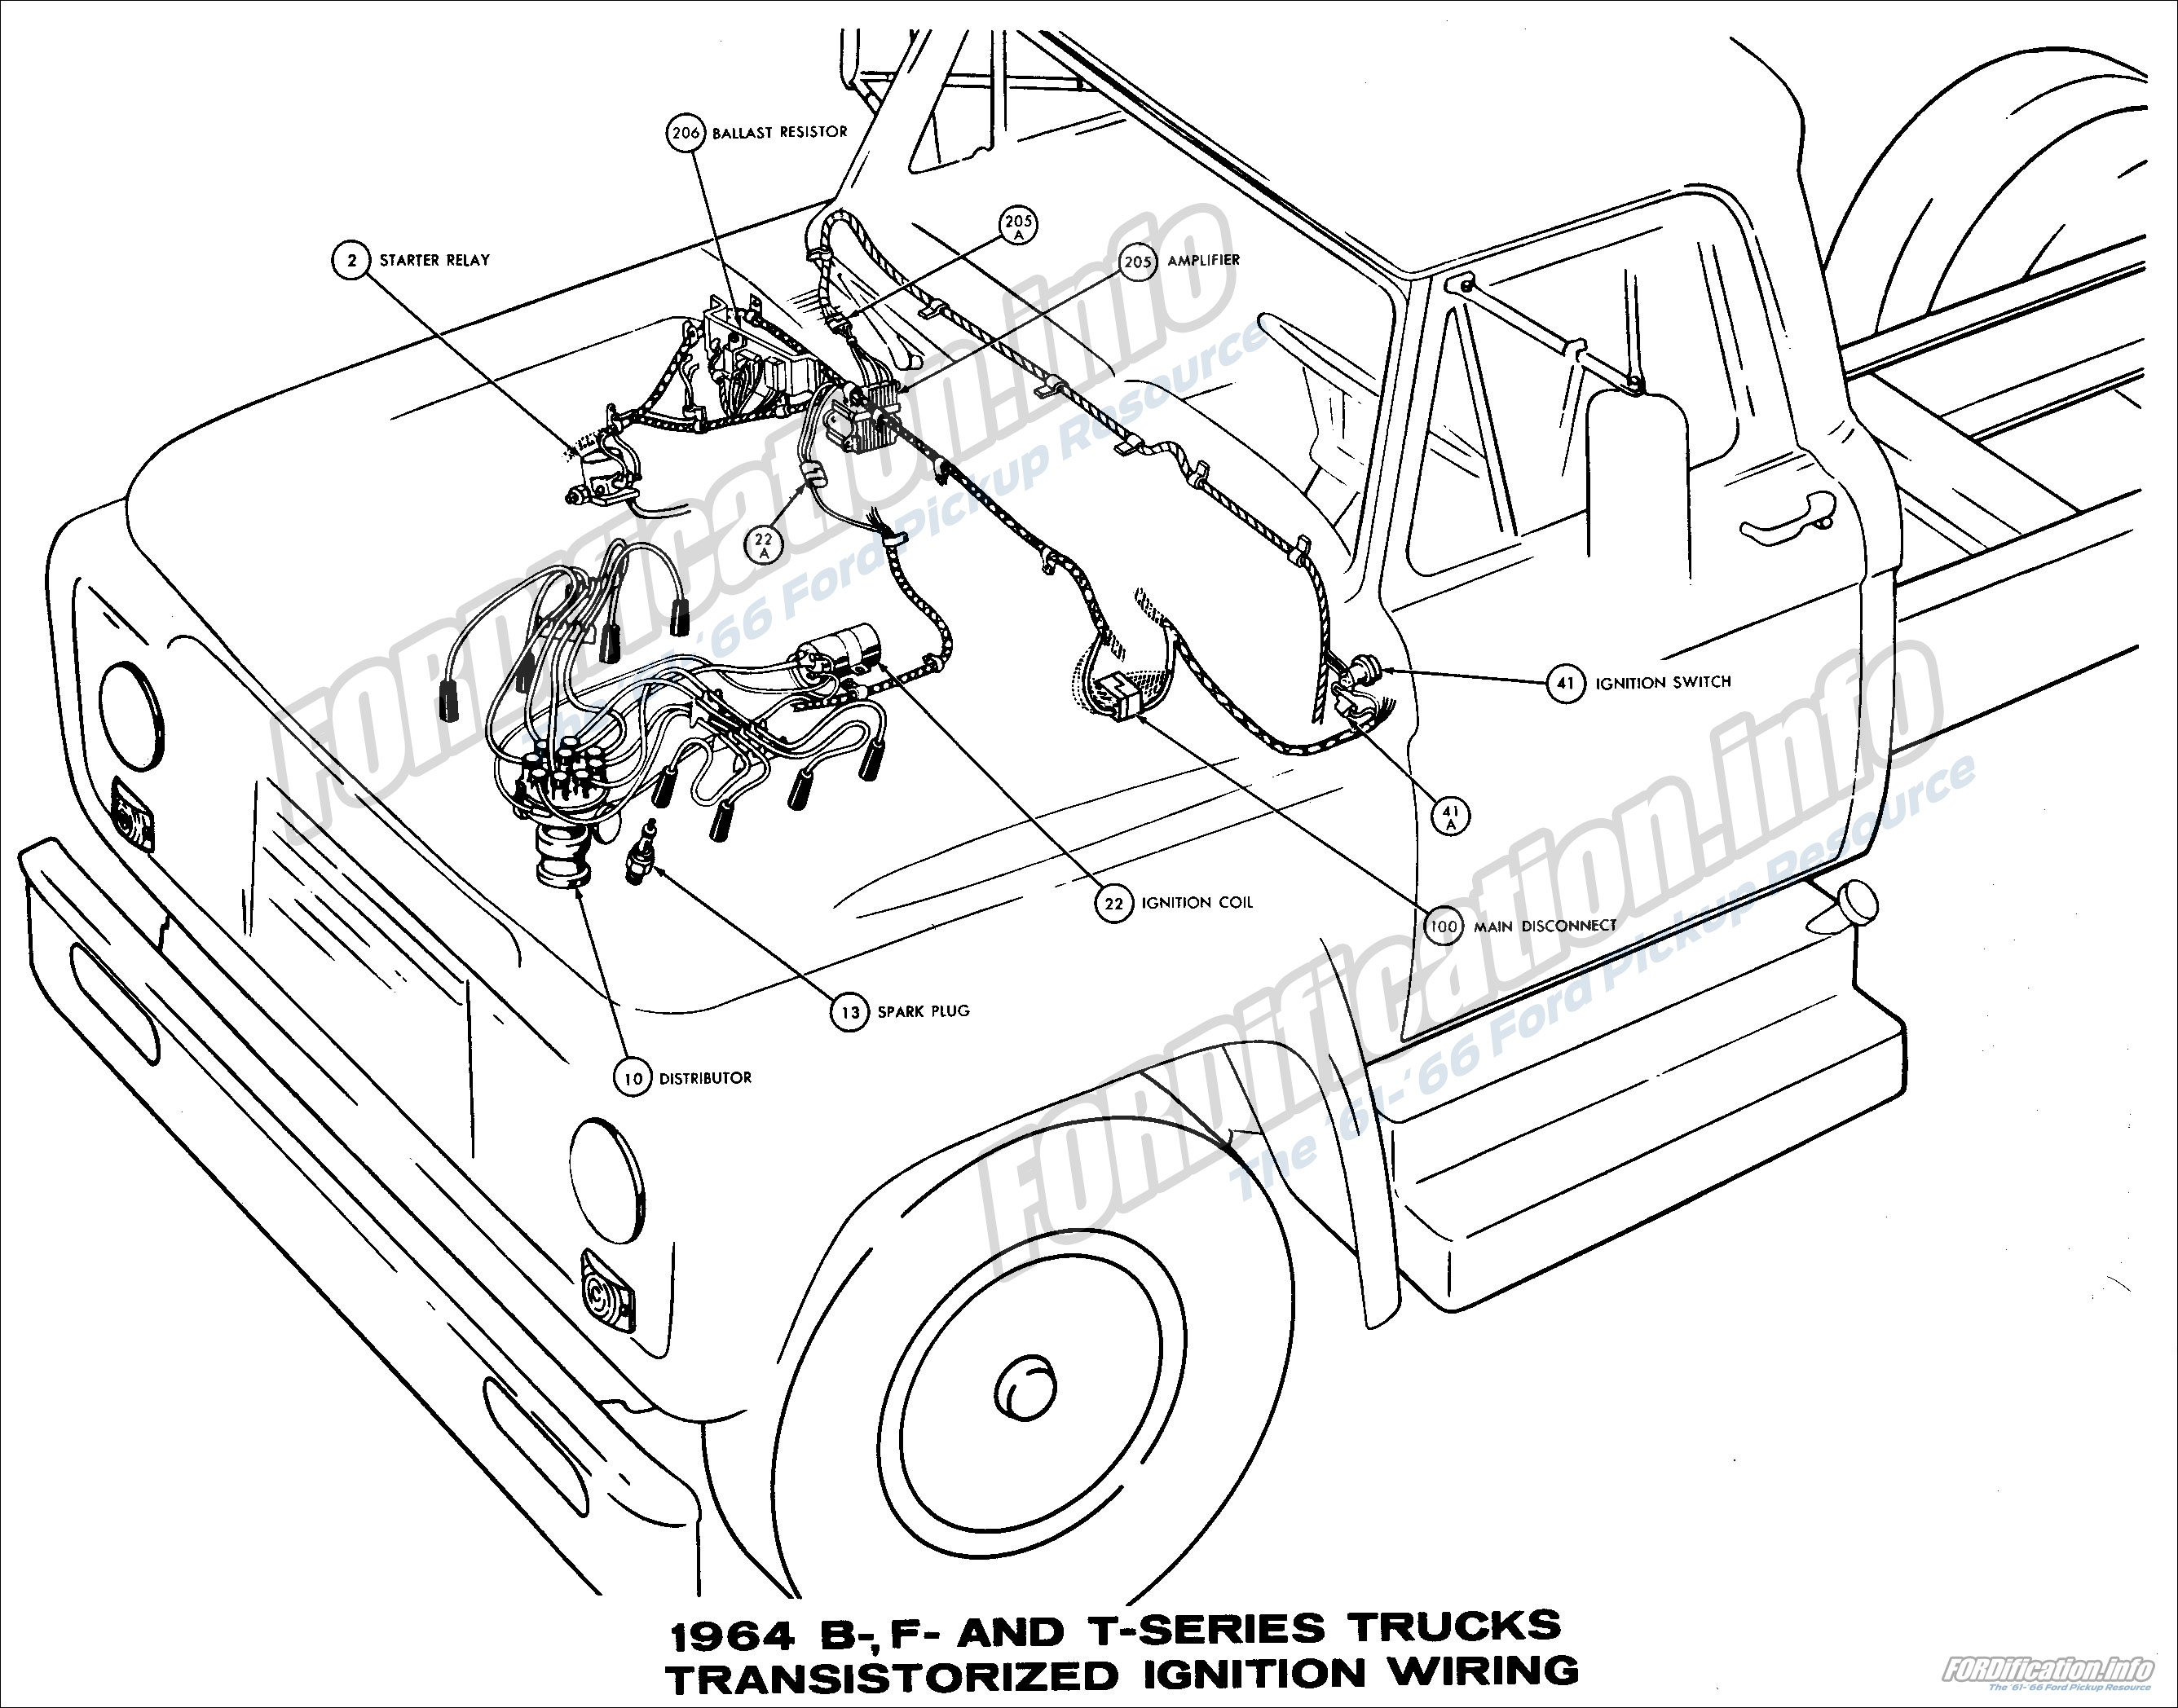 Ford Truck Drawing At Free For Personal Use 1965 Wiring Diagram 2672x2096 1964 Diagrams